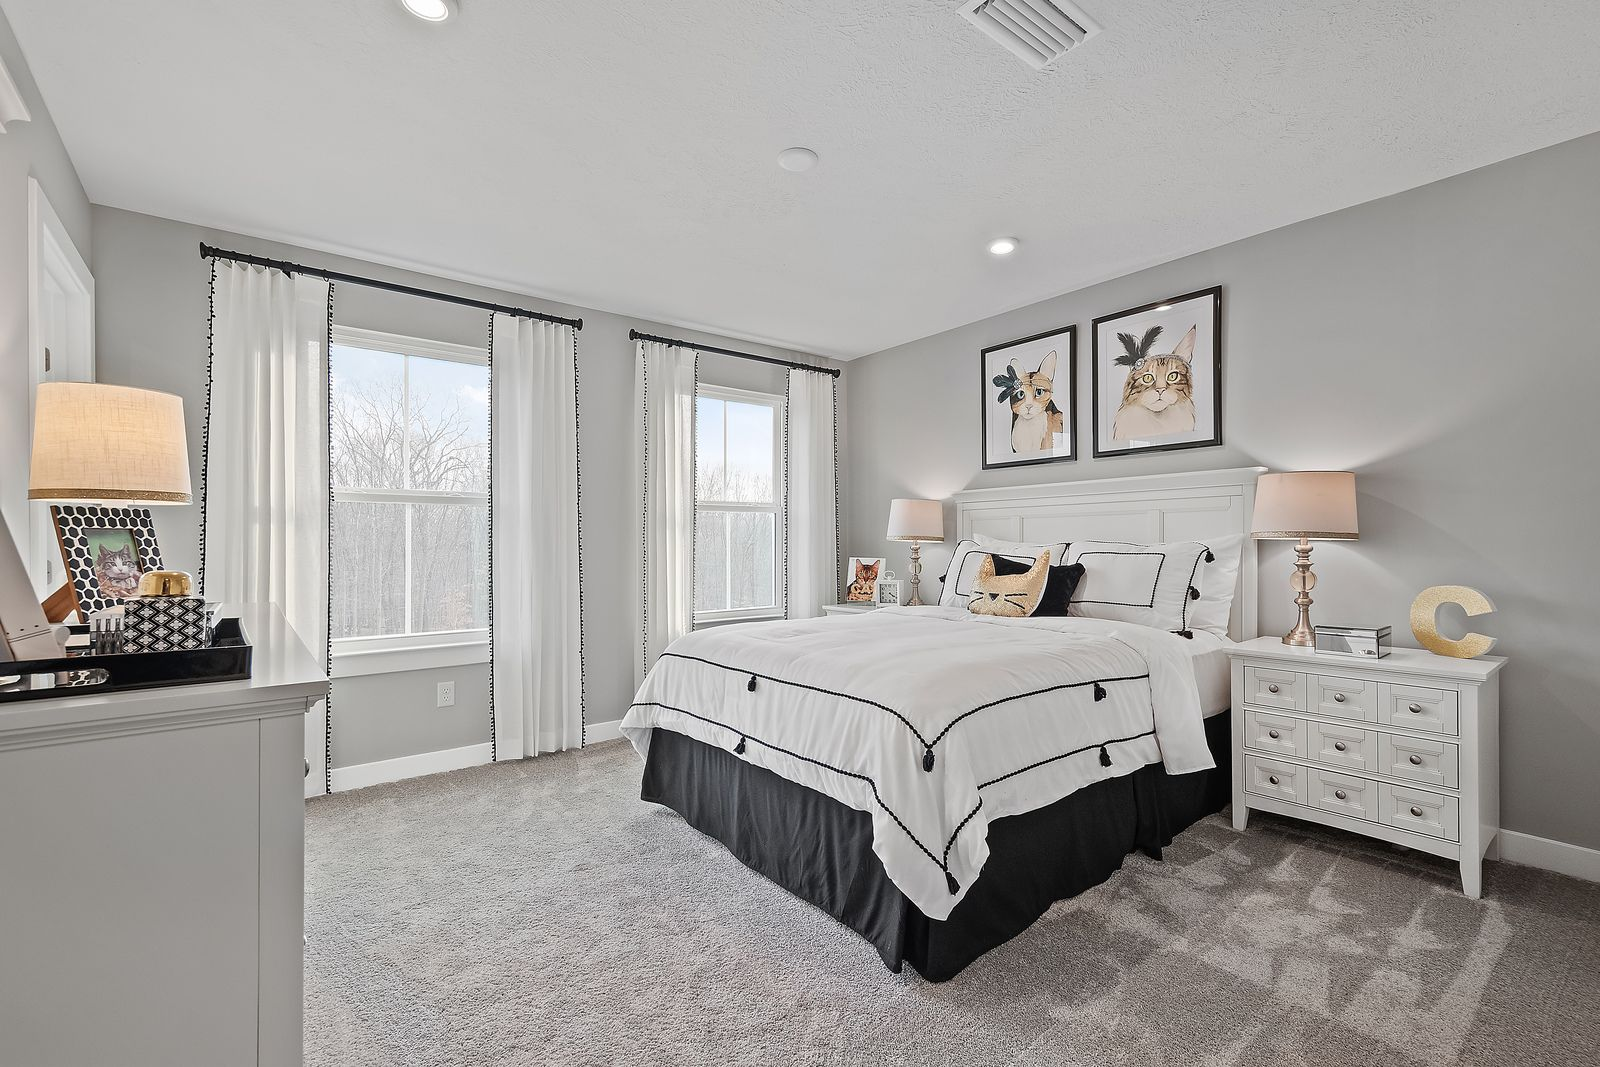 Bedroom featured in the Bear Run w/ Finished Basement By Ryan Homes in Dayton-Springfield, OH